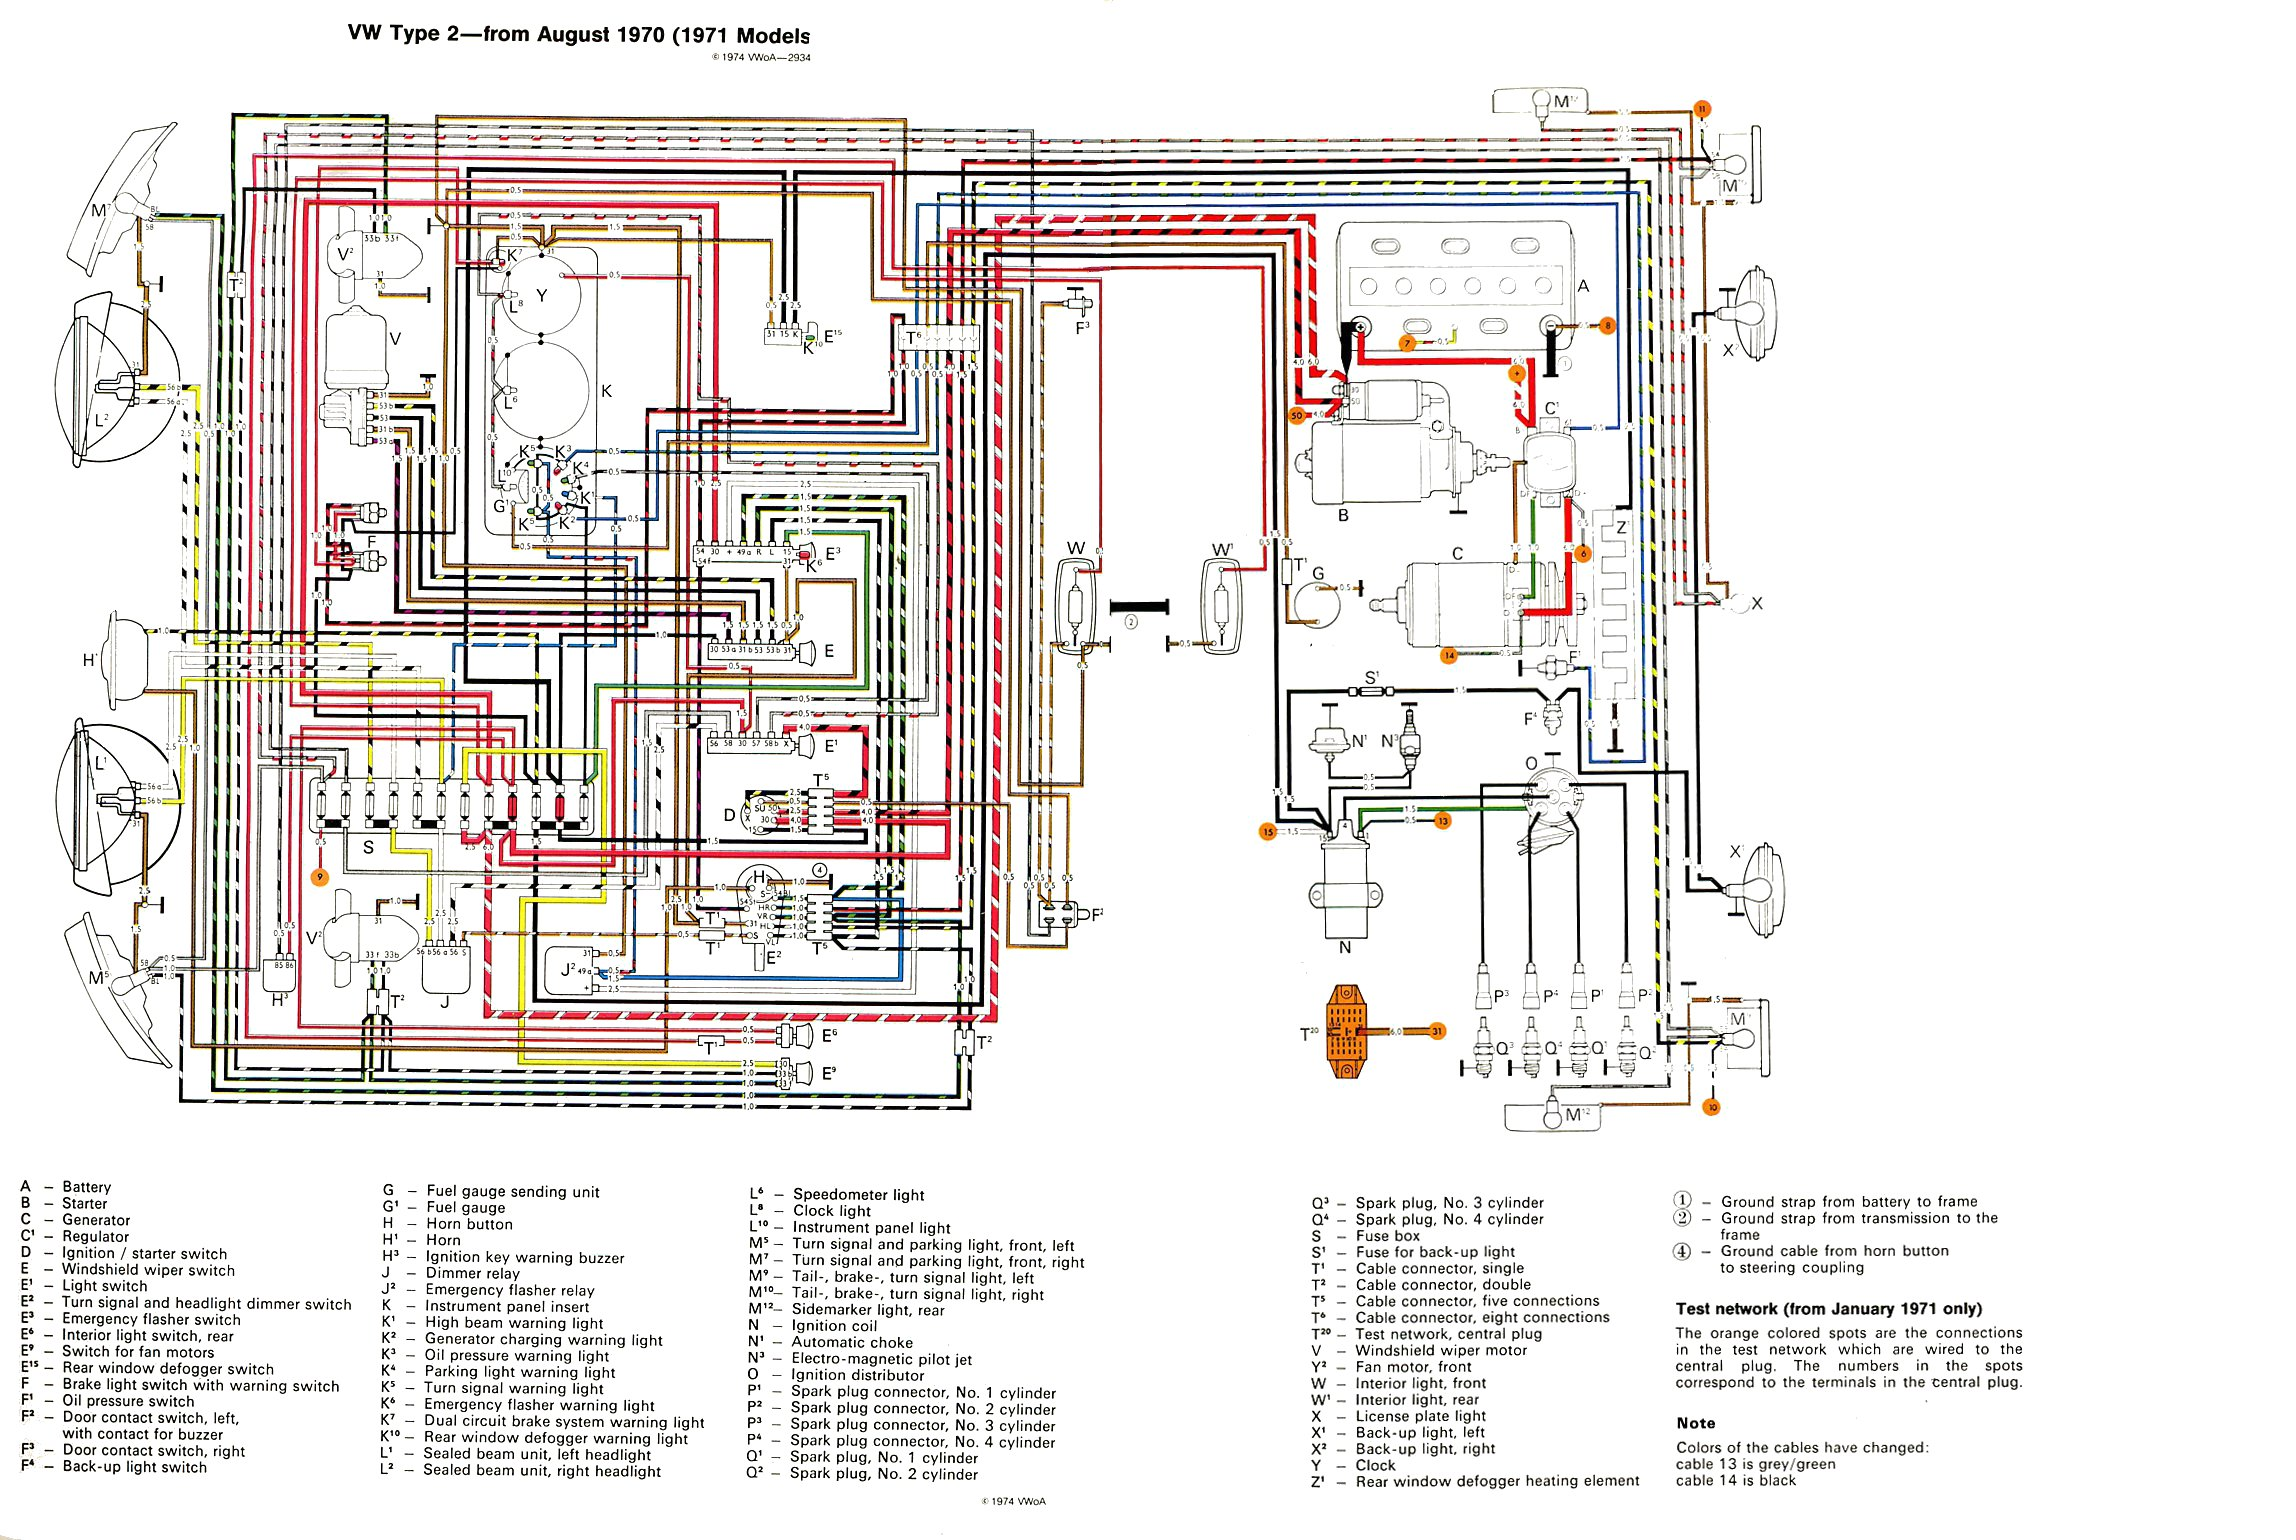 Alternator Wiring Diagram For 1986 Olds Library 85 Bronco 1979 Dodge Opinions About U2022 Gmc Truck